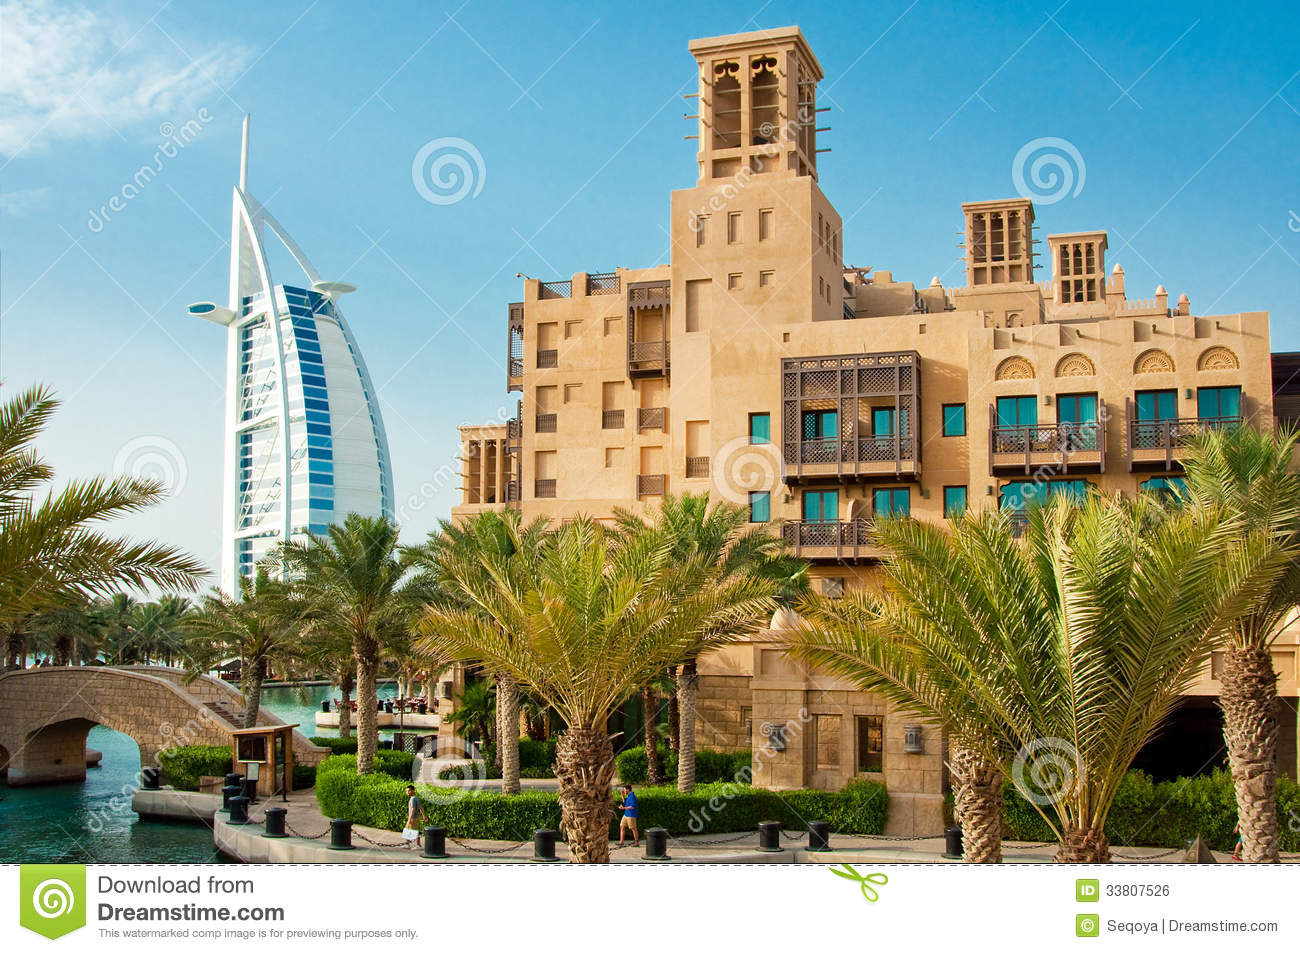 Dubai june 3 the famous hotel and tourist district for Dubai world famous hotel